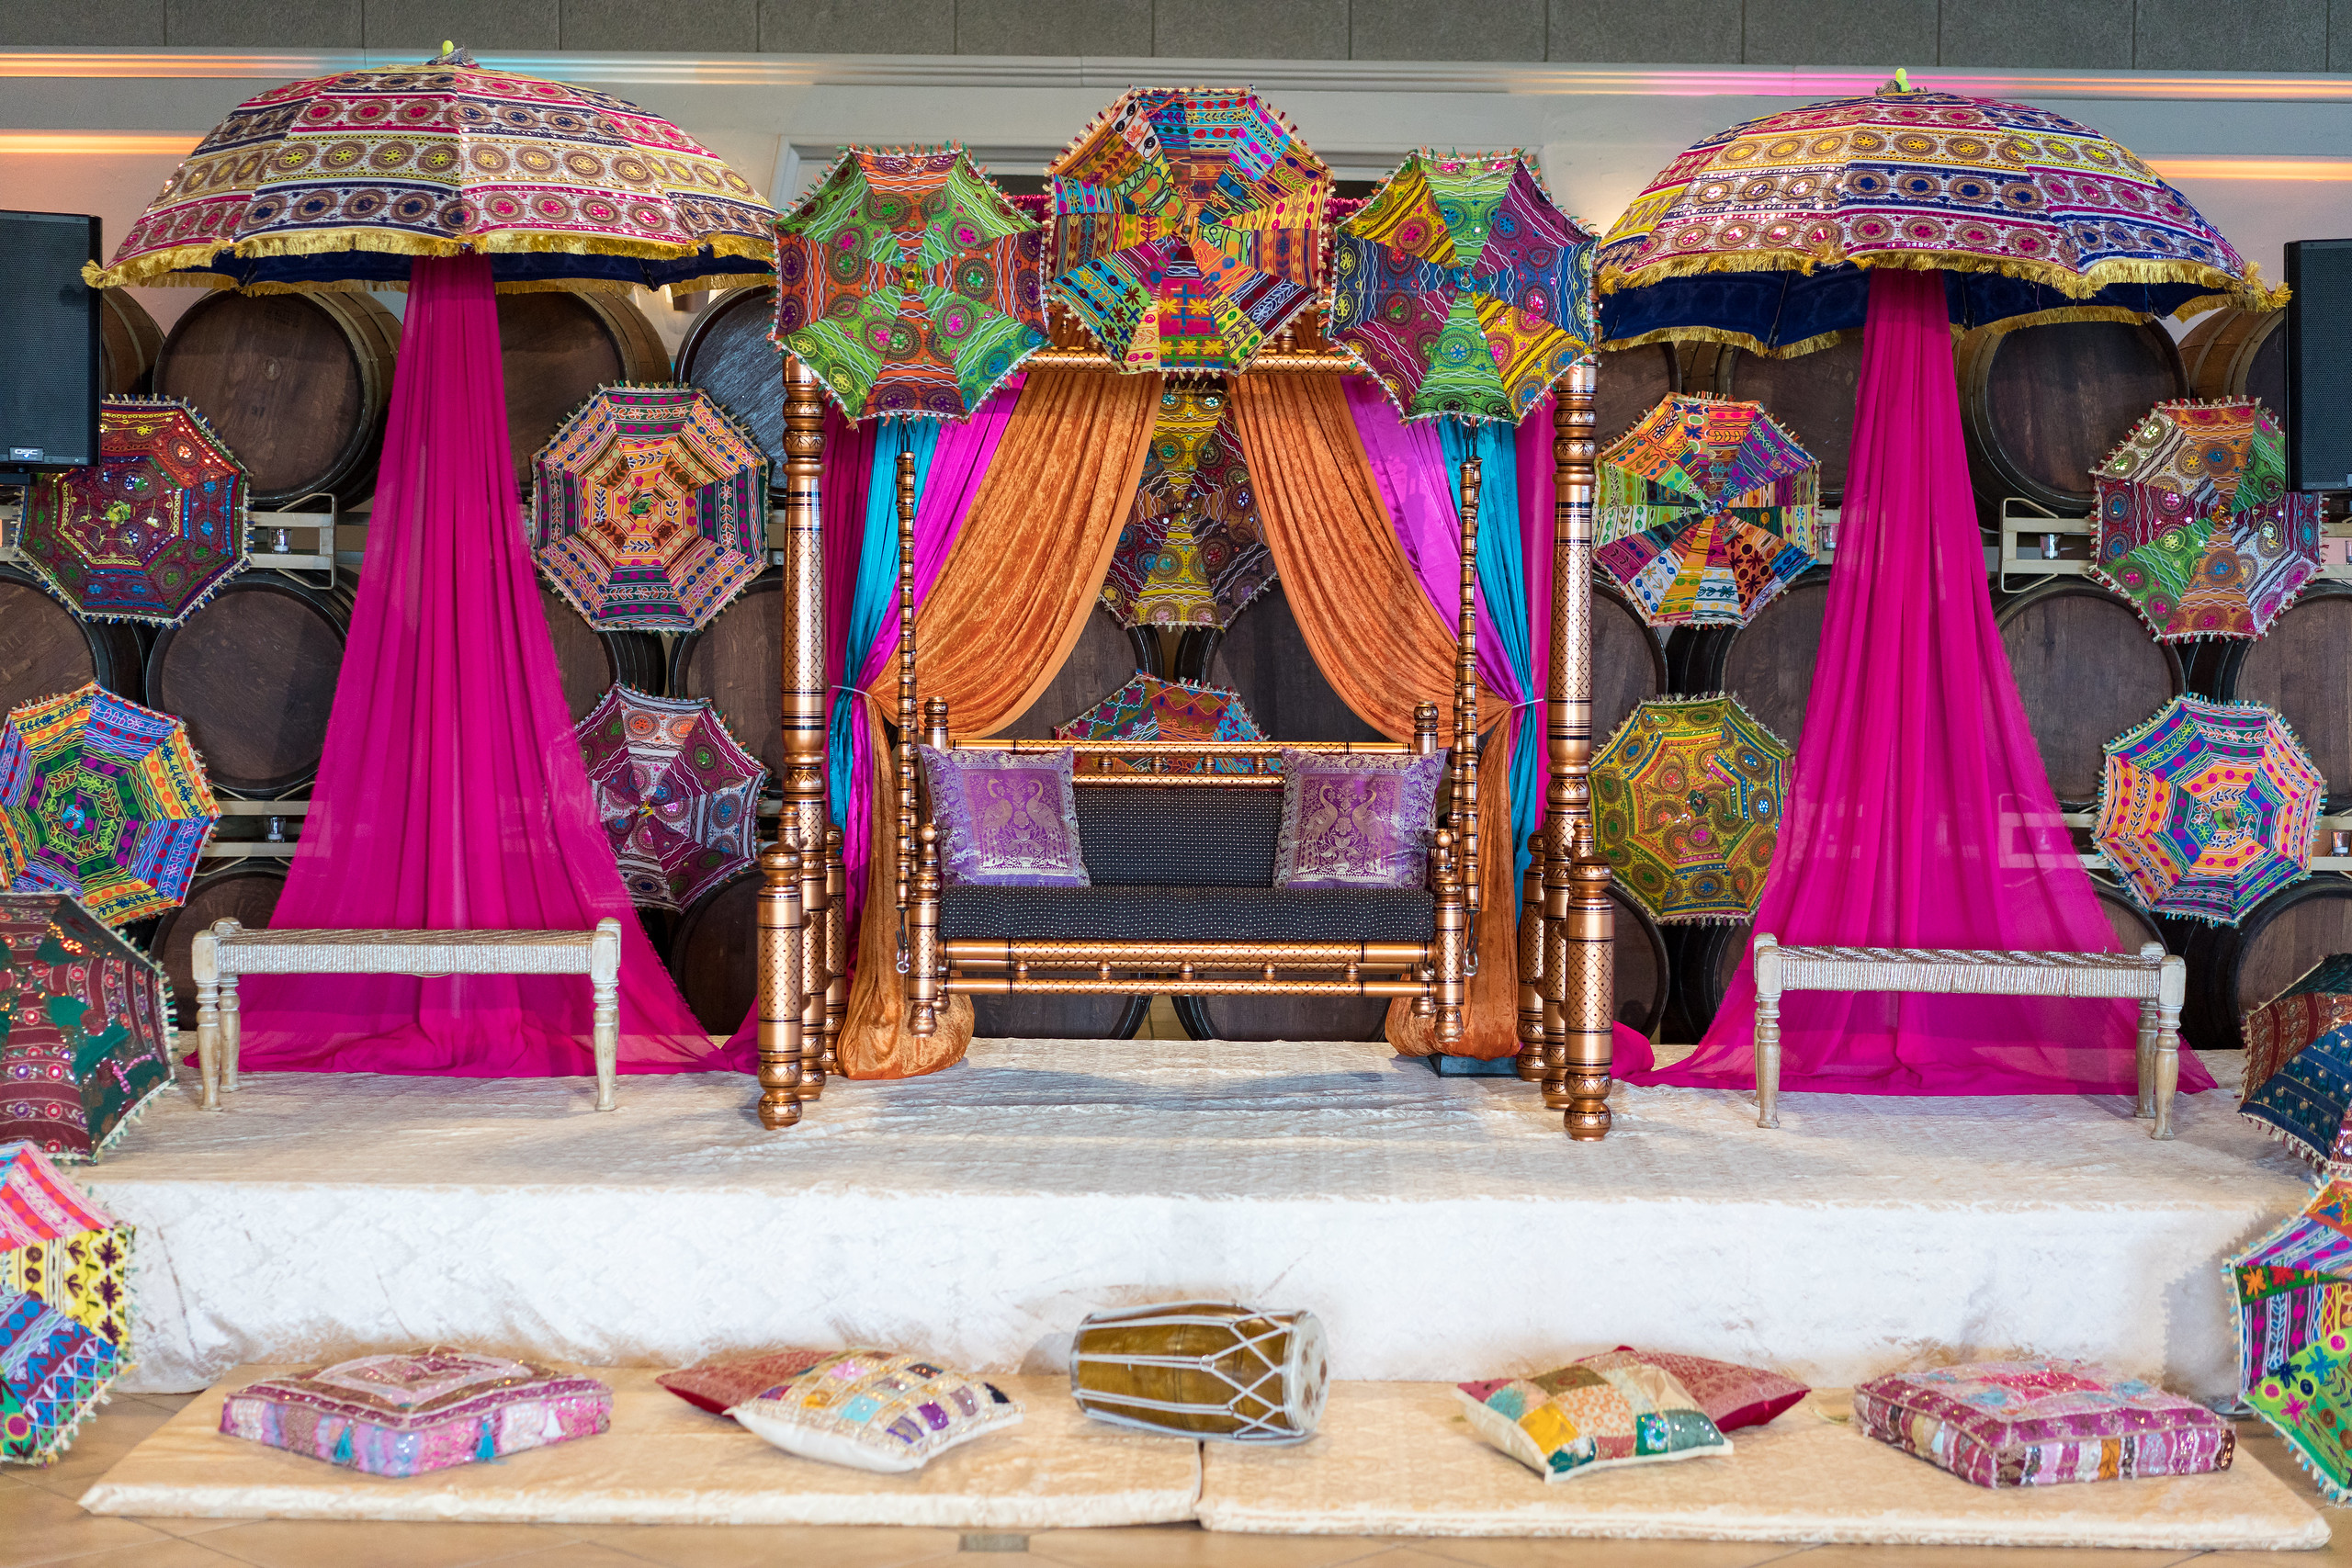 Kirndip & Baljinder  - Sikh Wedding Jaggo & Sangeet Decorations